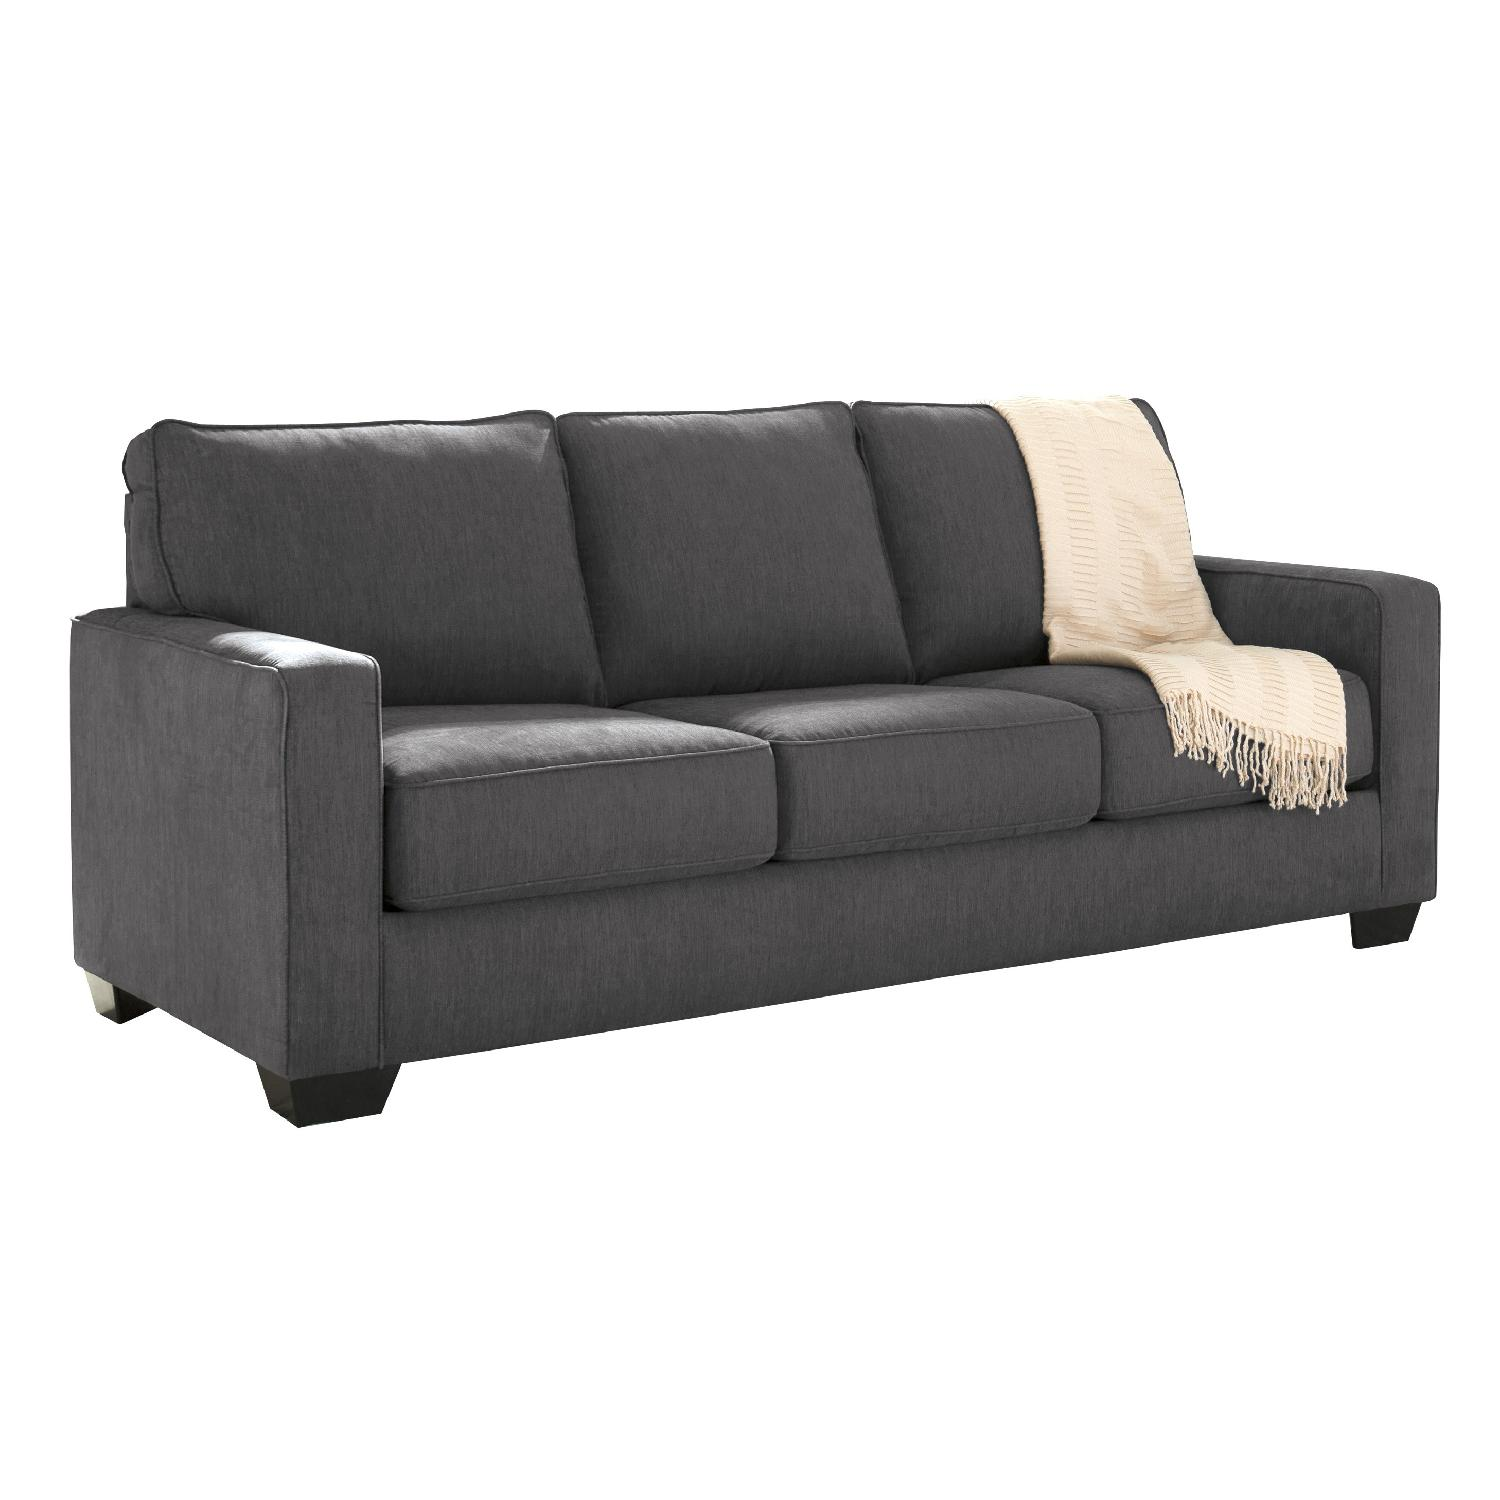 Ashley's Zeb Contemporary Queen Sleeper Sofa in Charcoal Color Fabric